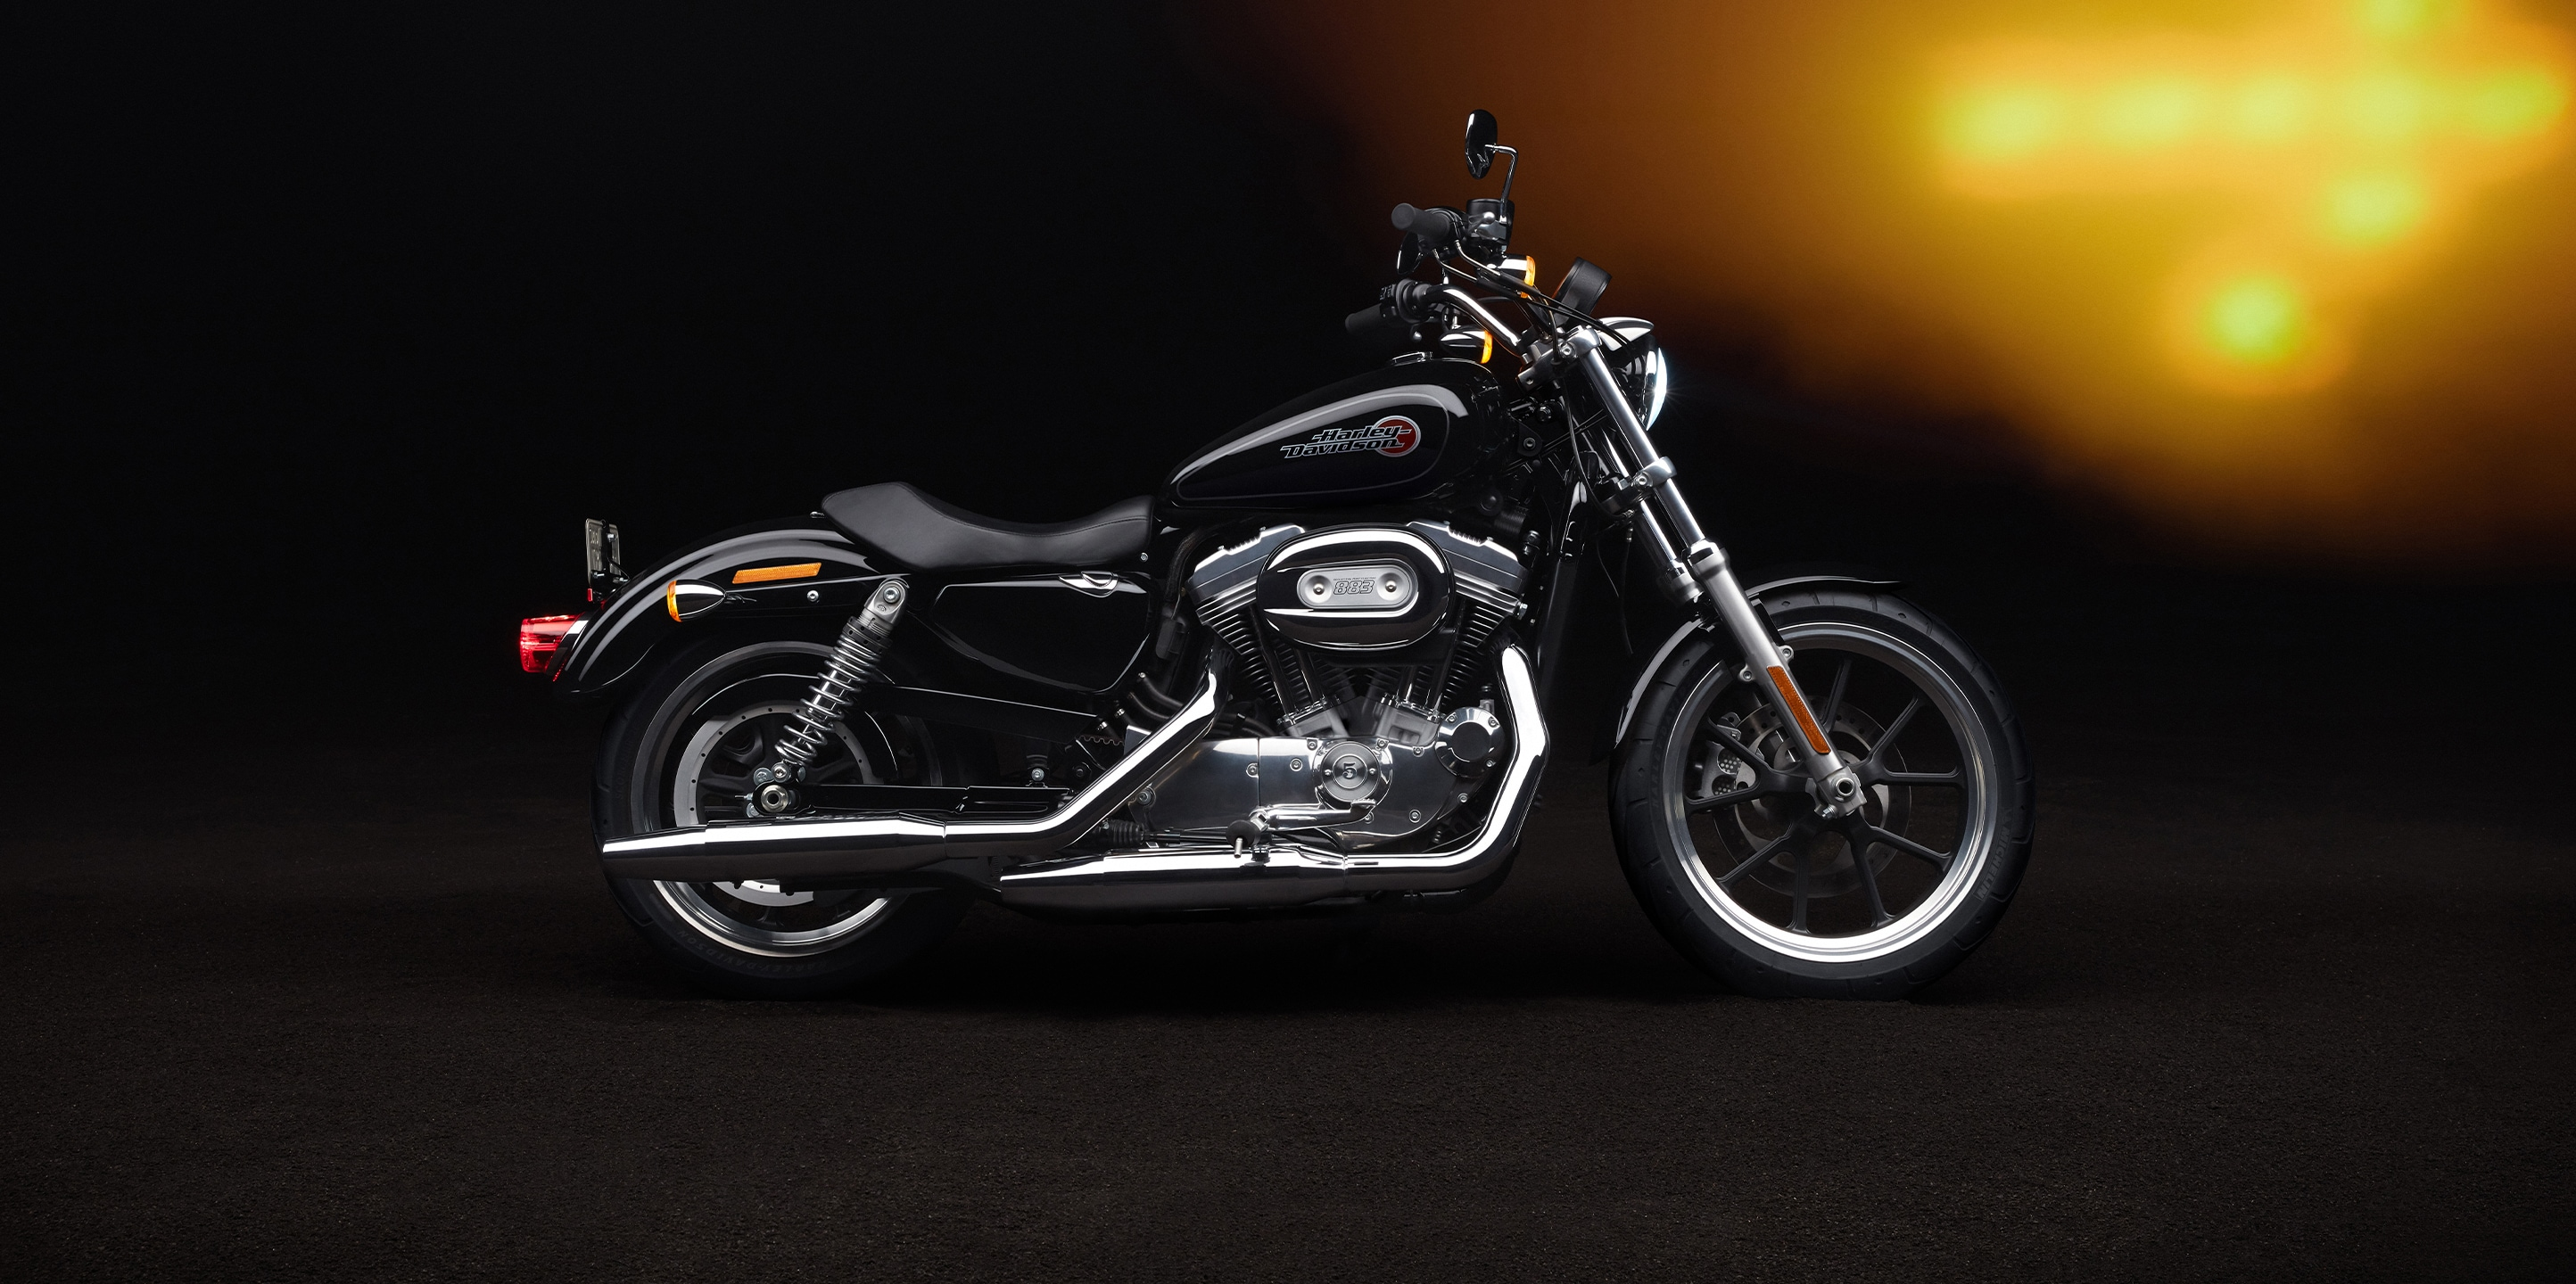 Parked Harley-Davidson 2020 Superlow motorcycle